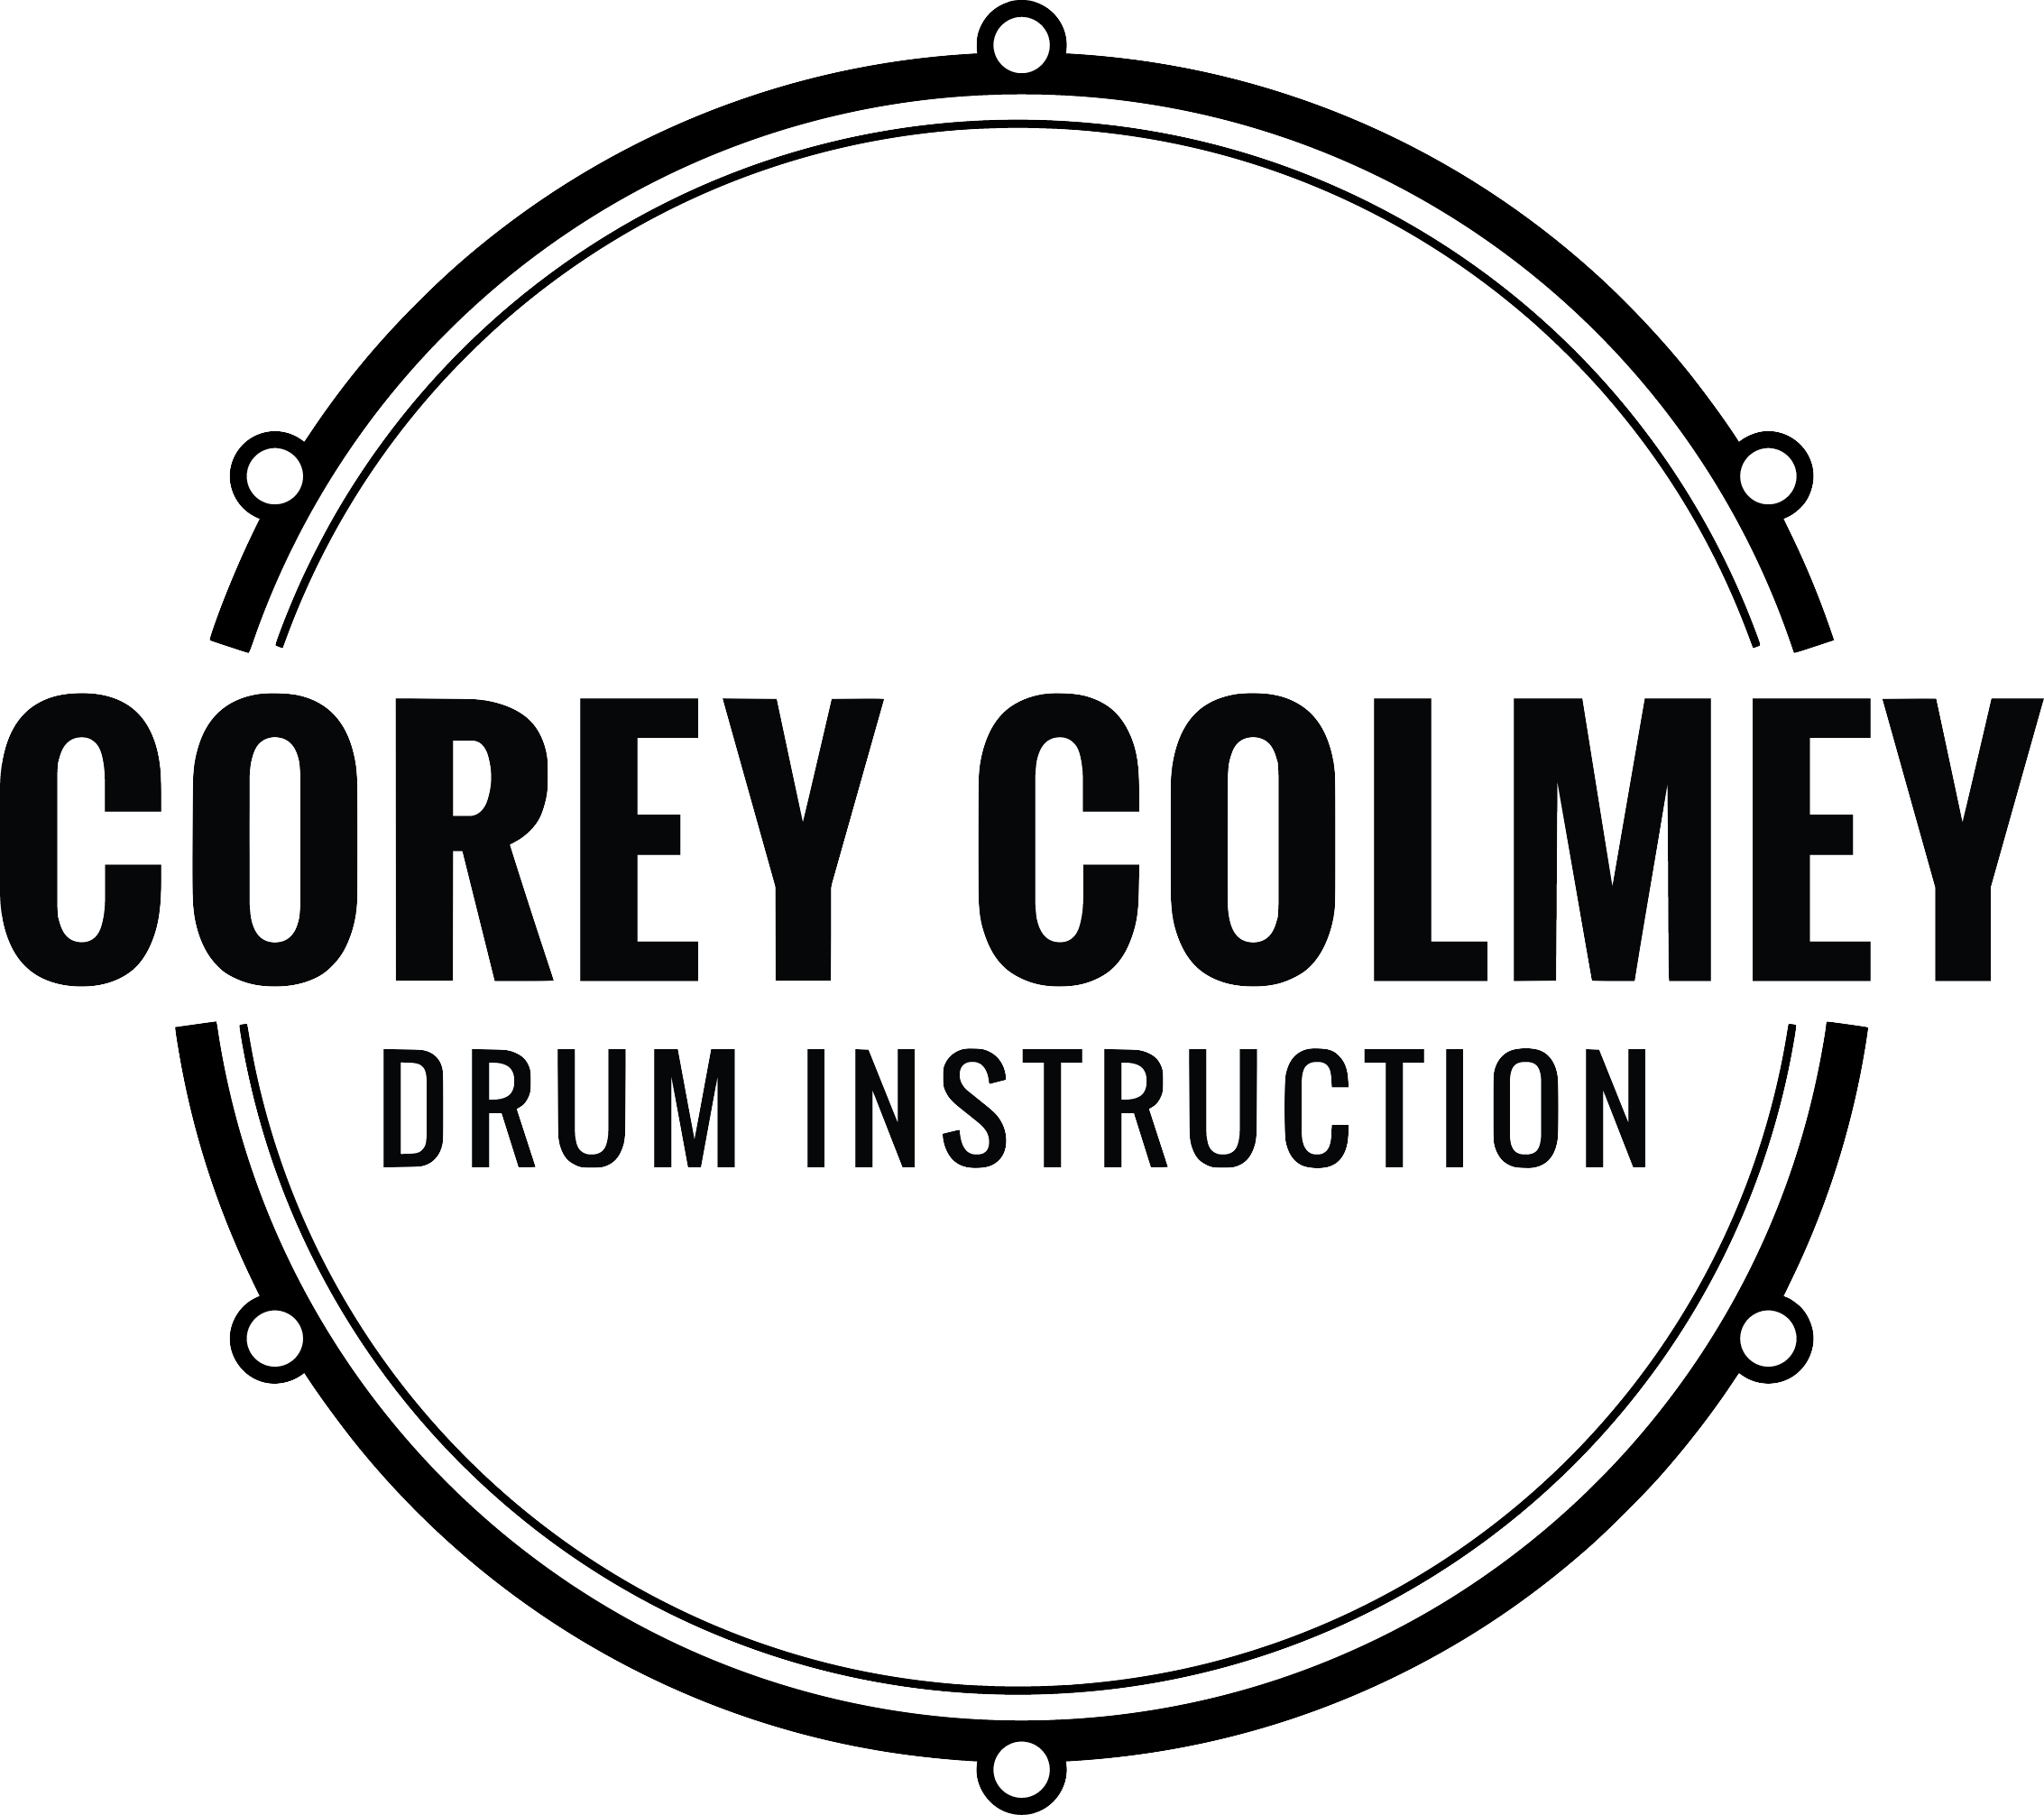 Corey Colmey Drum Instruction logo